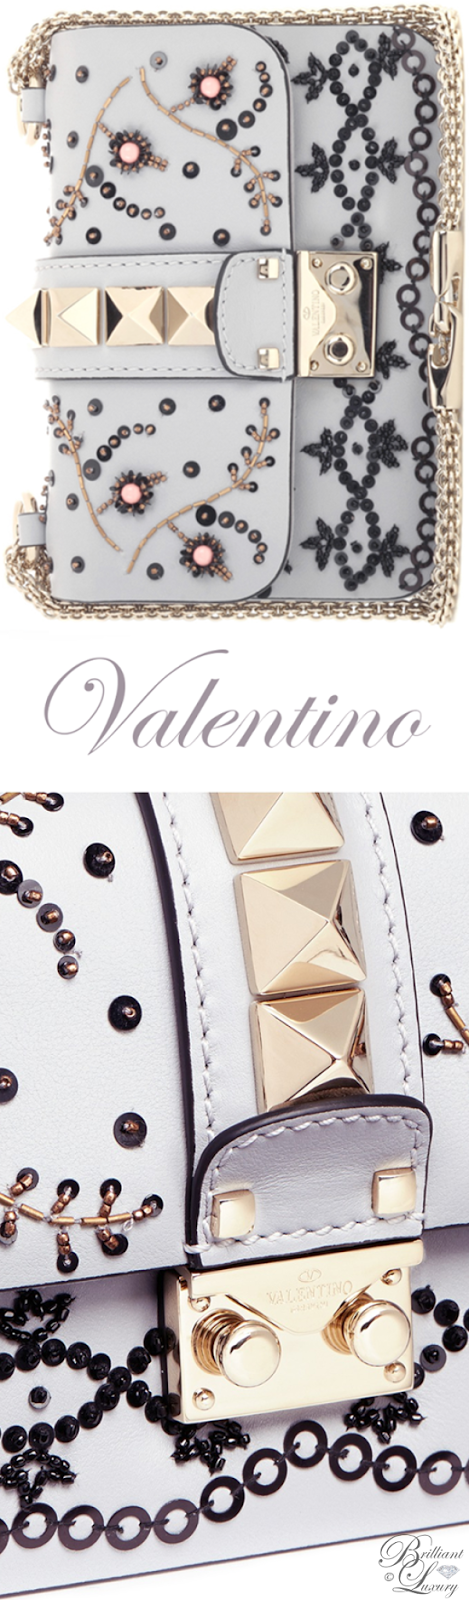 Brilliant Luxury ♦ Valentino Rockstud Lock Mini Beaded Leather Chain Bag